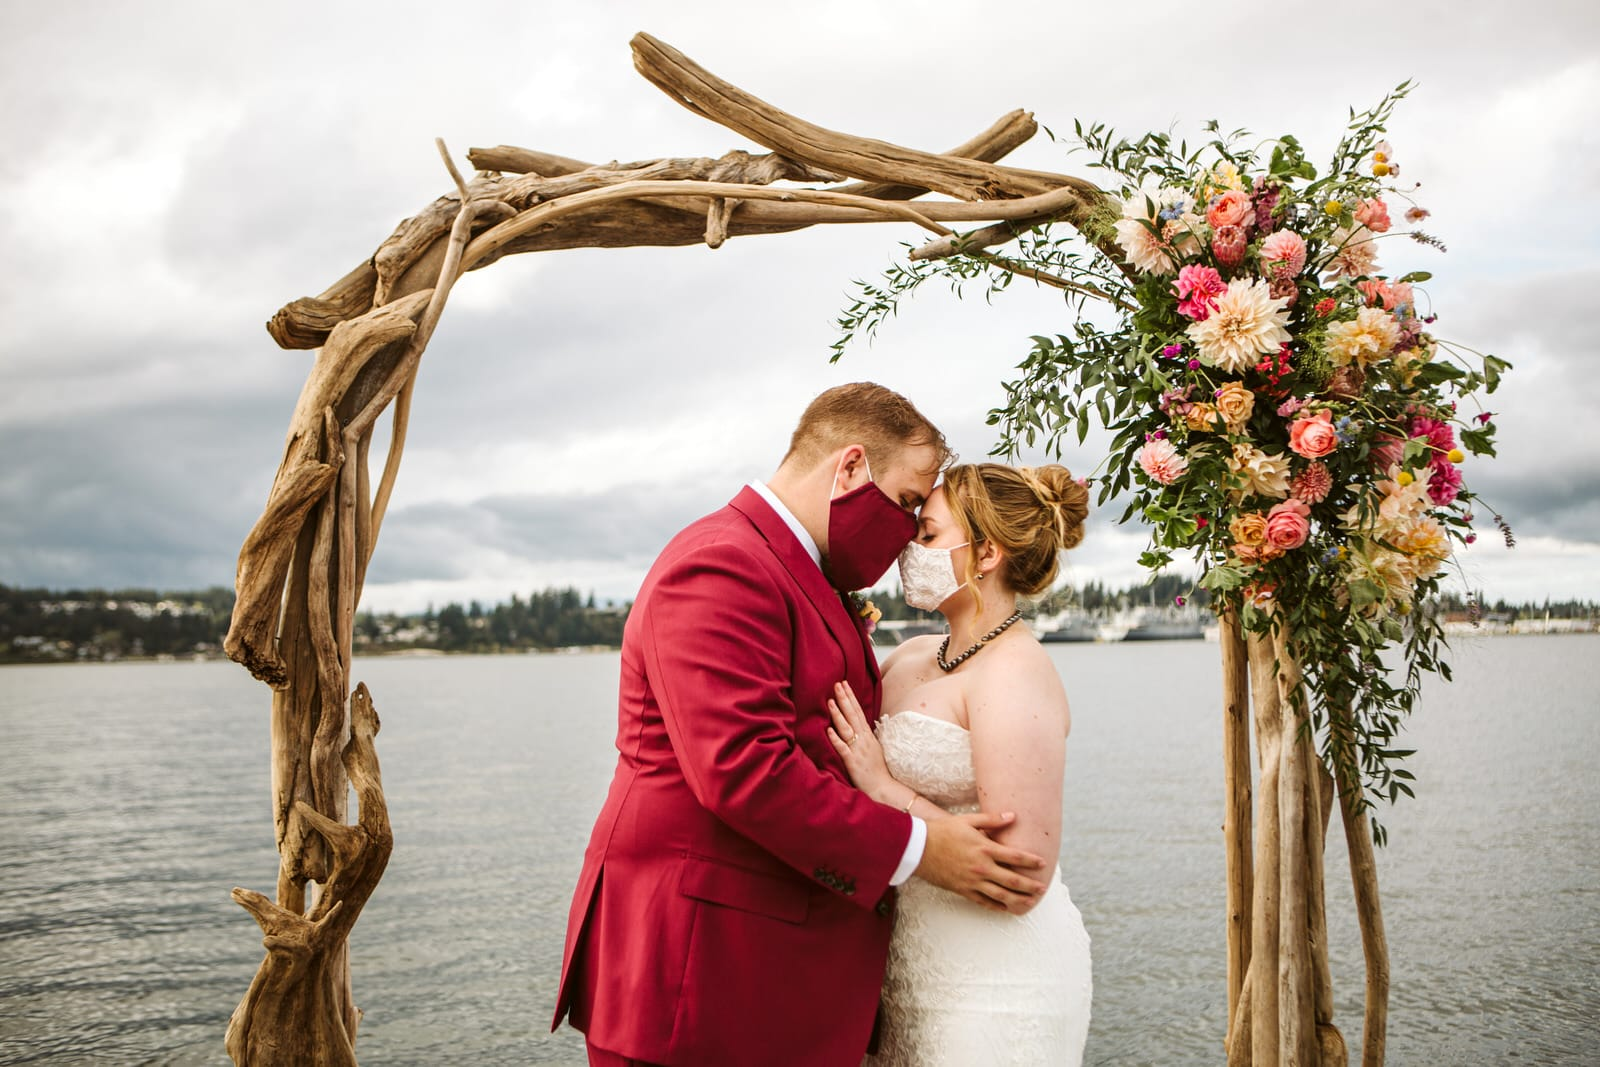 GW1 3677 Seattle and Snohomish Wedding and Engagement Photography by GSquared Weddings Photography